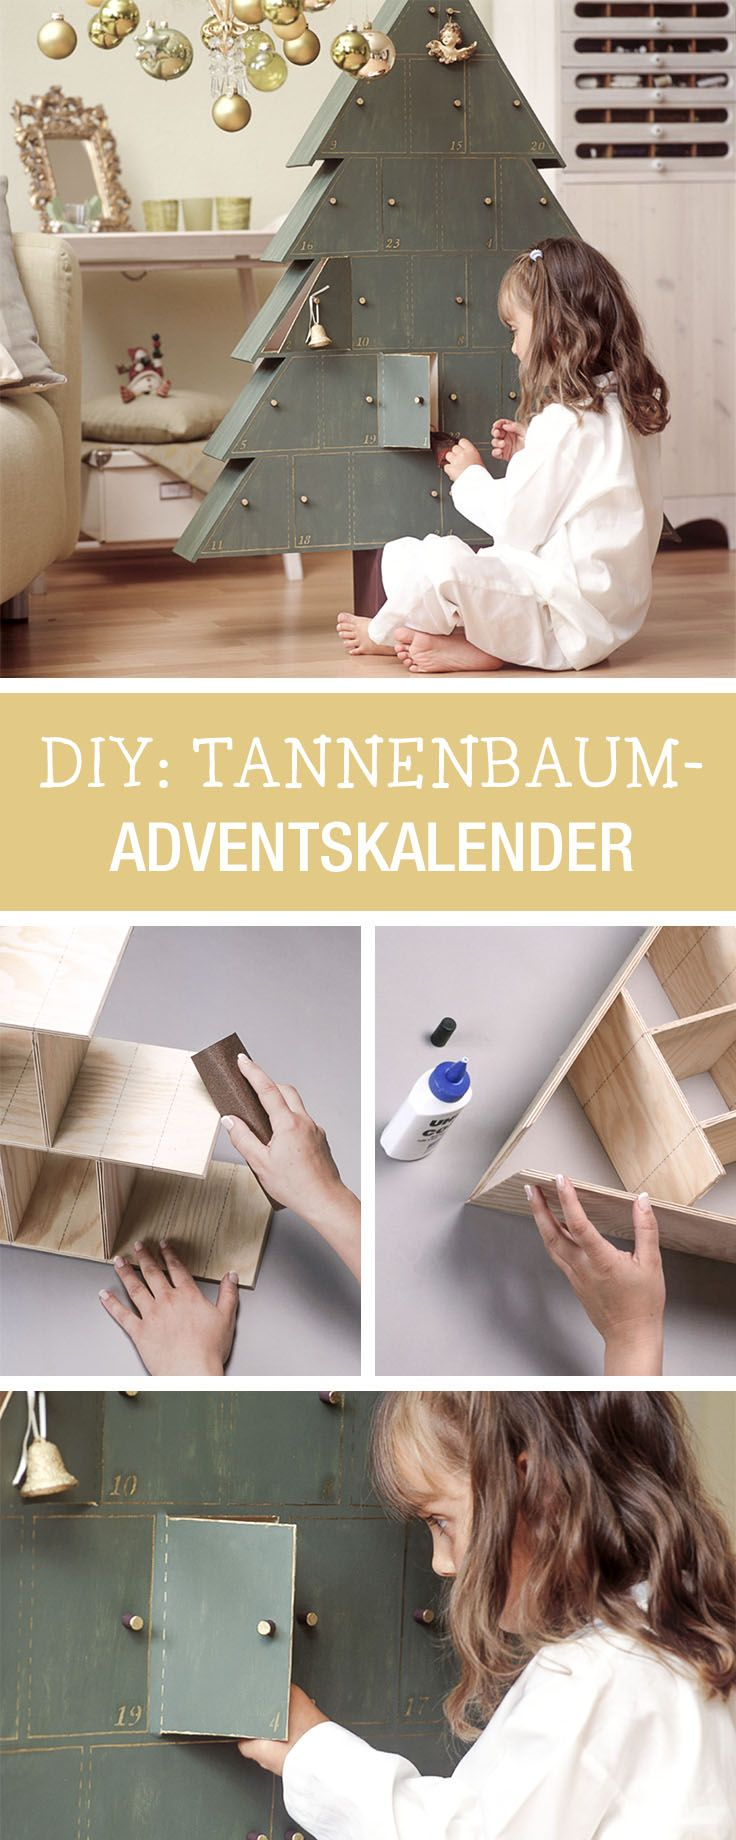 diy anleitung tannenbaum adventskalender aus holz basteln via wooden advent. Black Bedroom Furniture Sets. Home Design Ideas